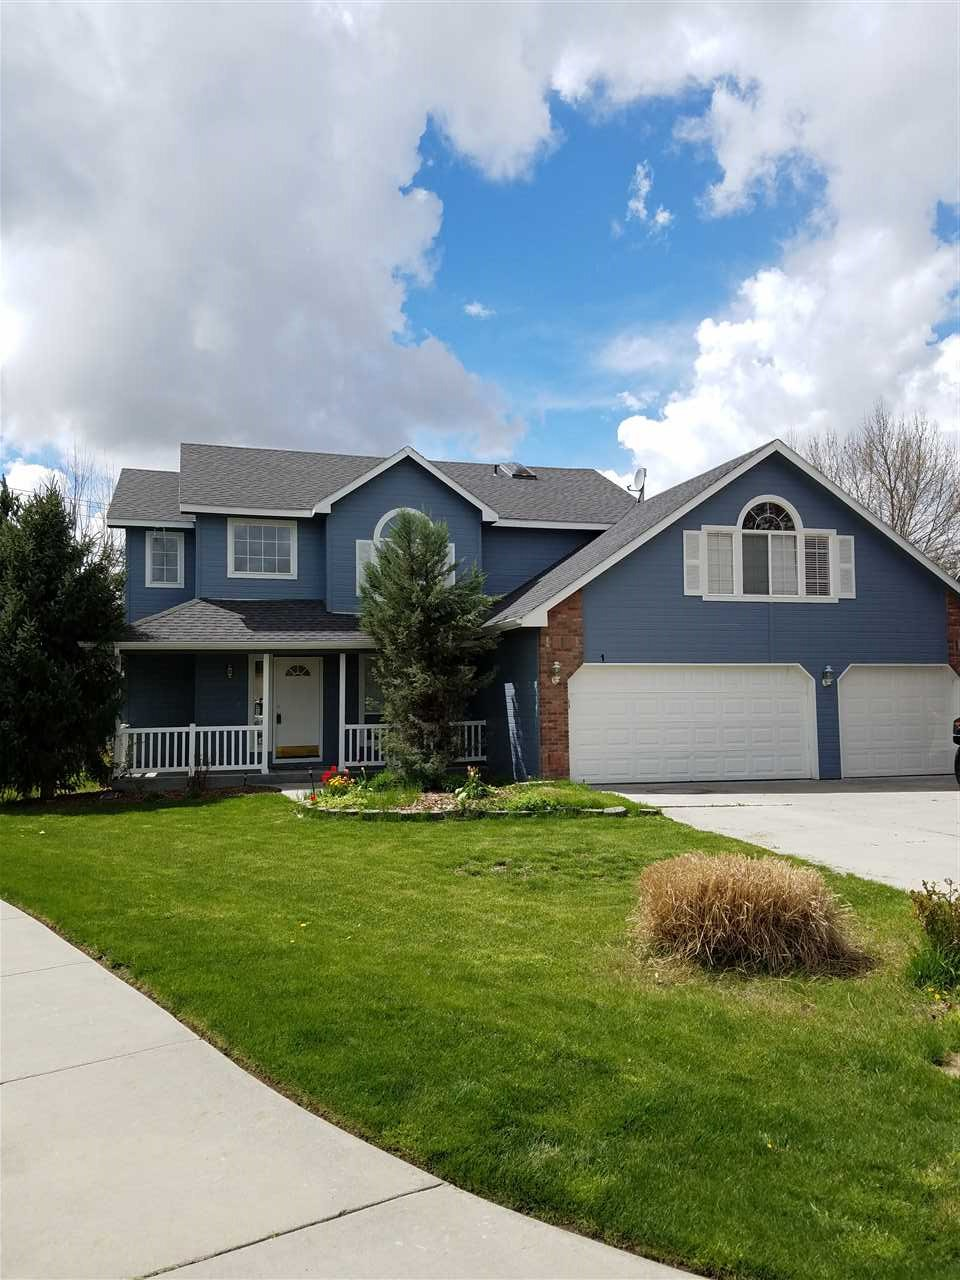 1397 W Powder Ct, Eagle, ID 83616